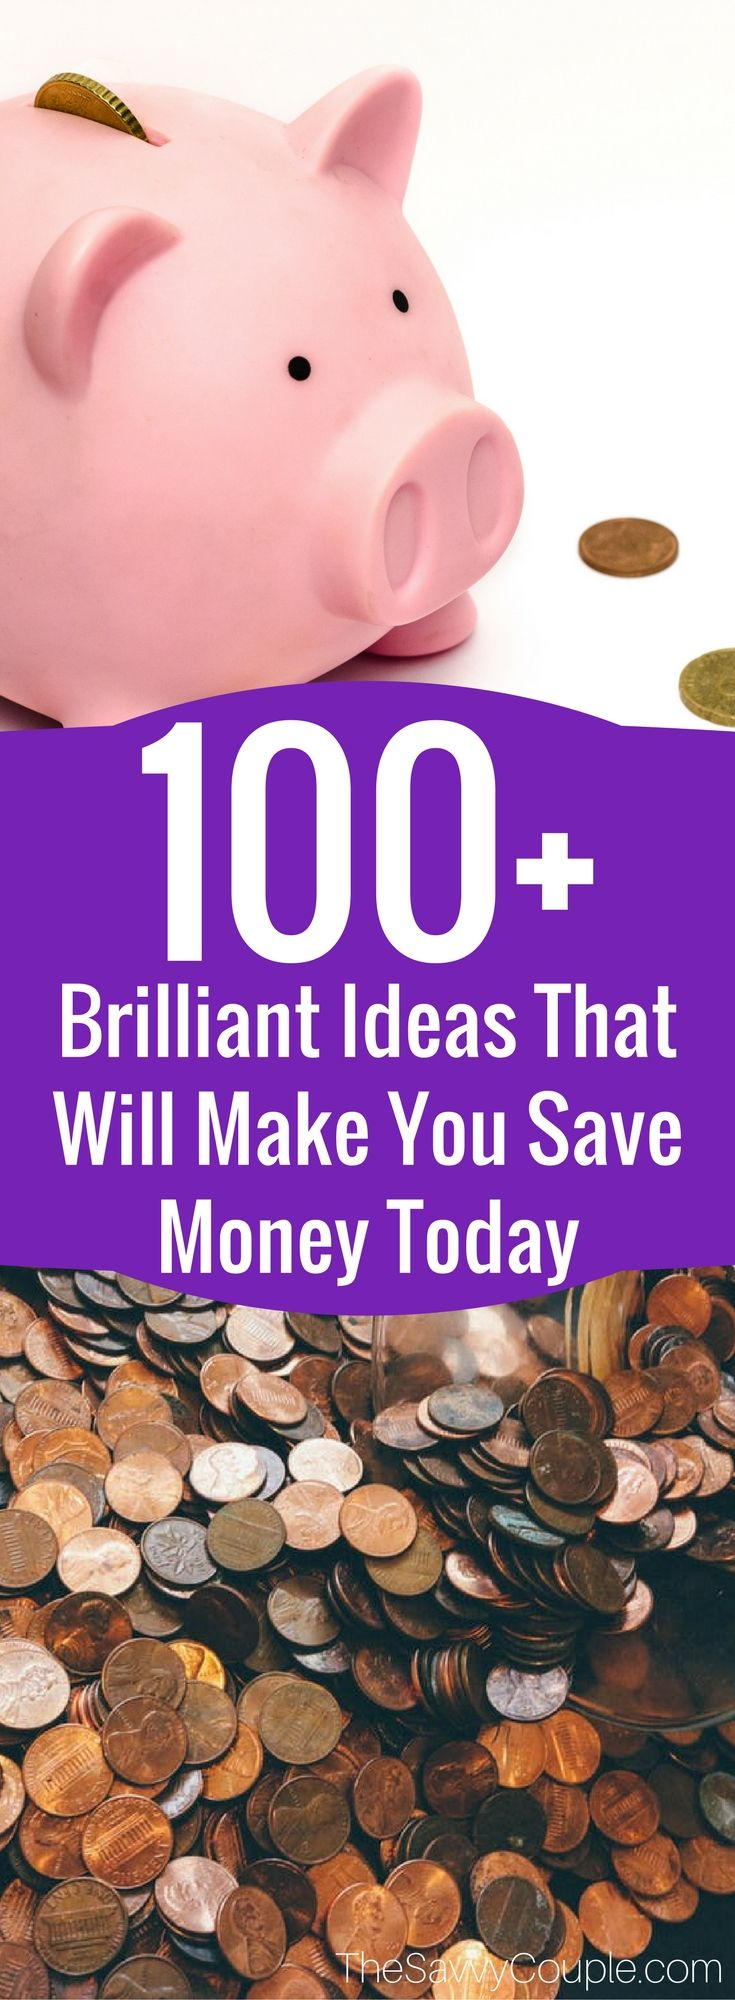 10944 best living frugally money saving ideas images on for Minimalist living 100 things list